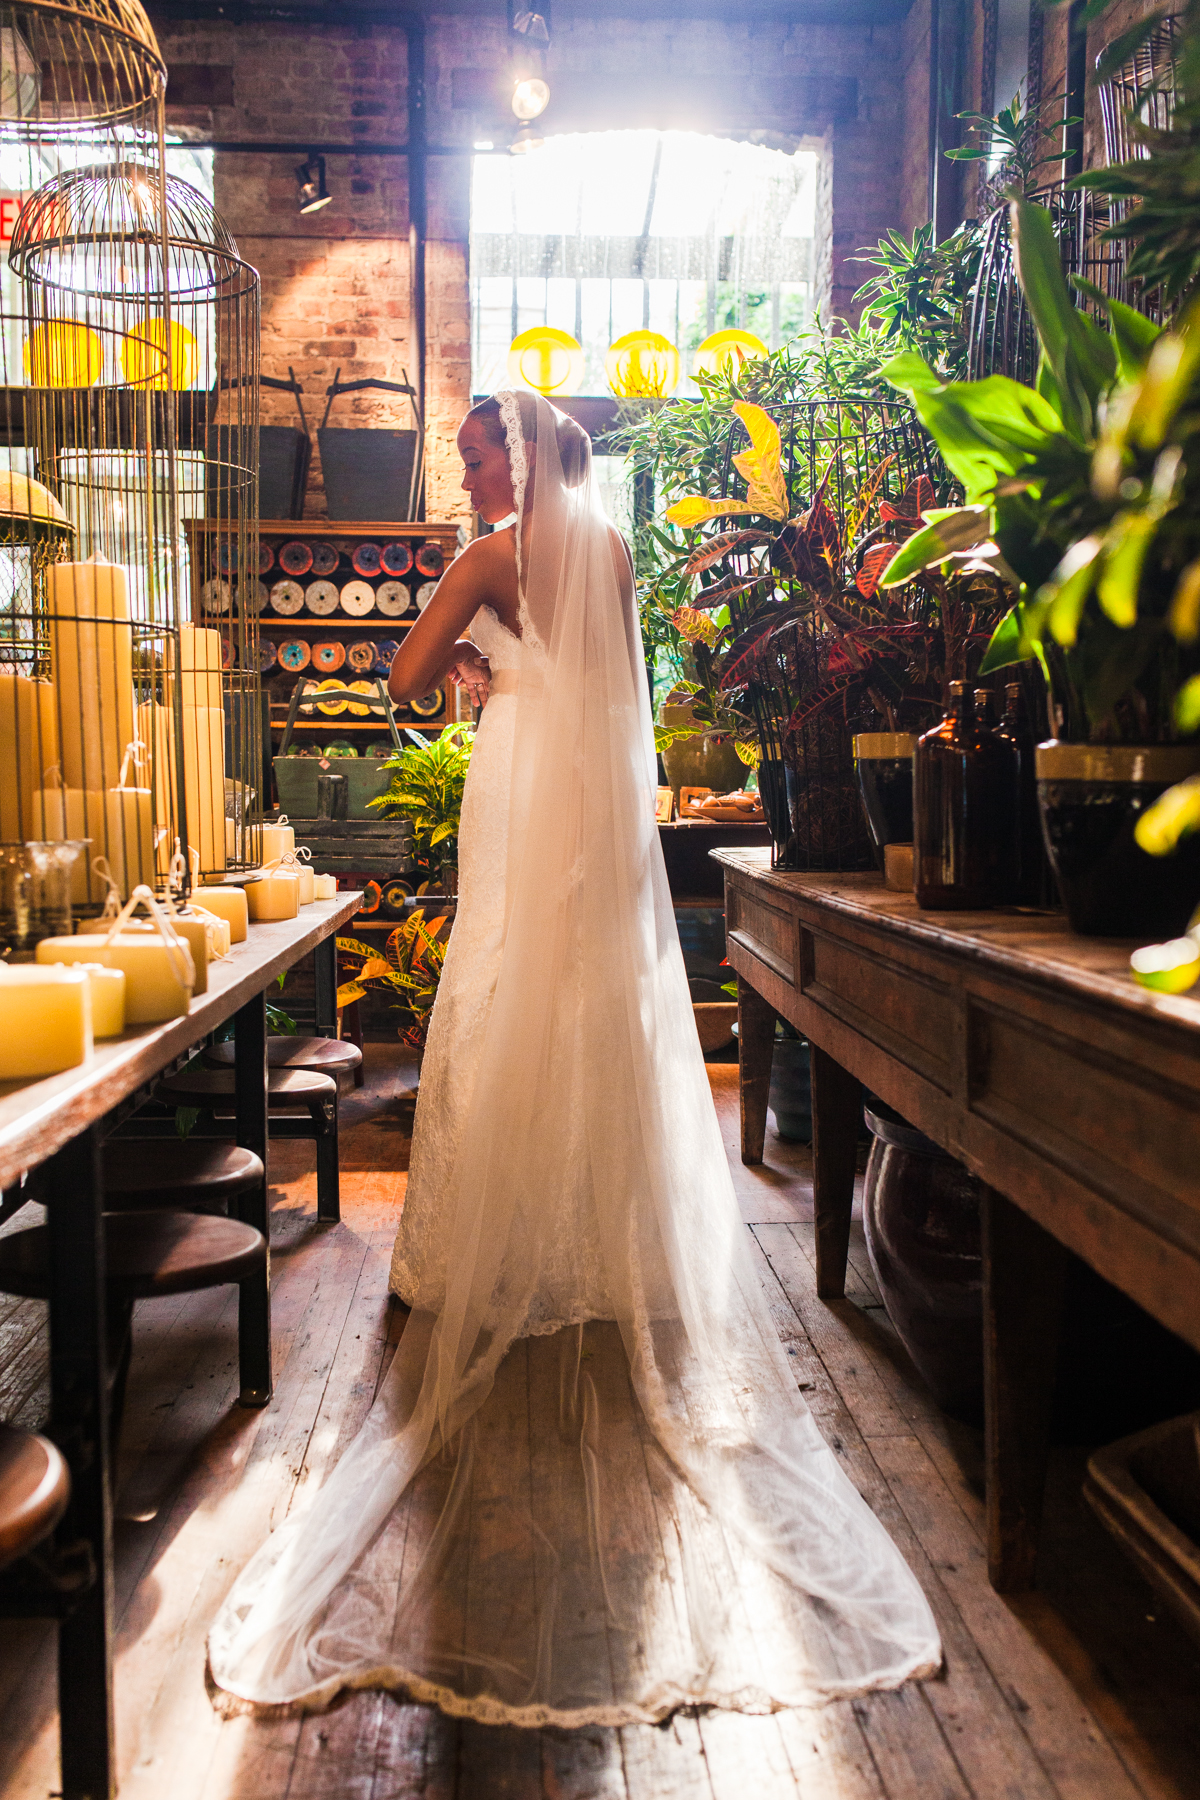 chicago-documentary-wedding-at-a-new-leaf-vintage-inspired-jumping-the-broom-oriana-koren-1047.jpg